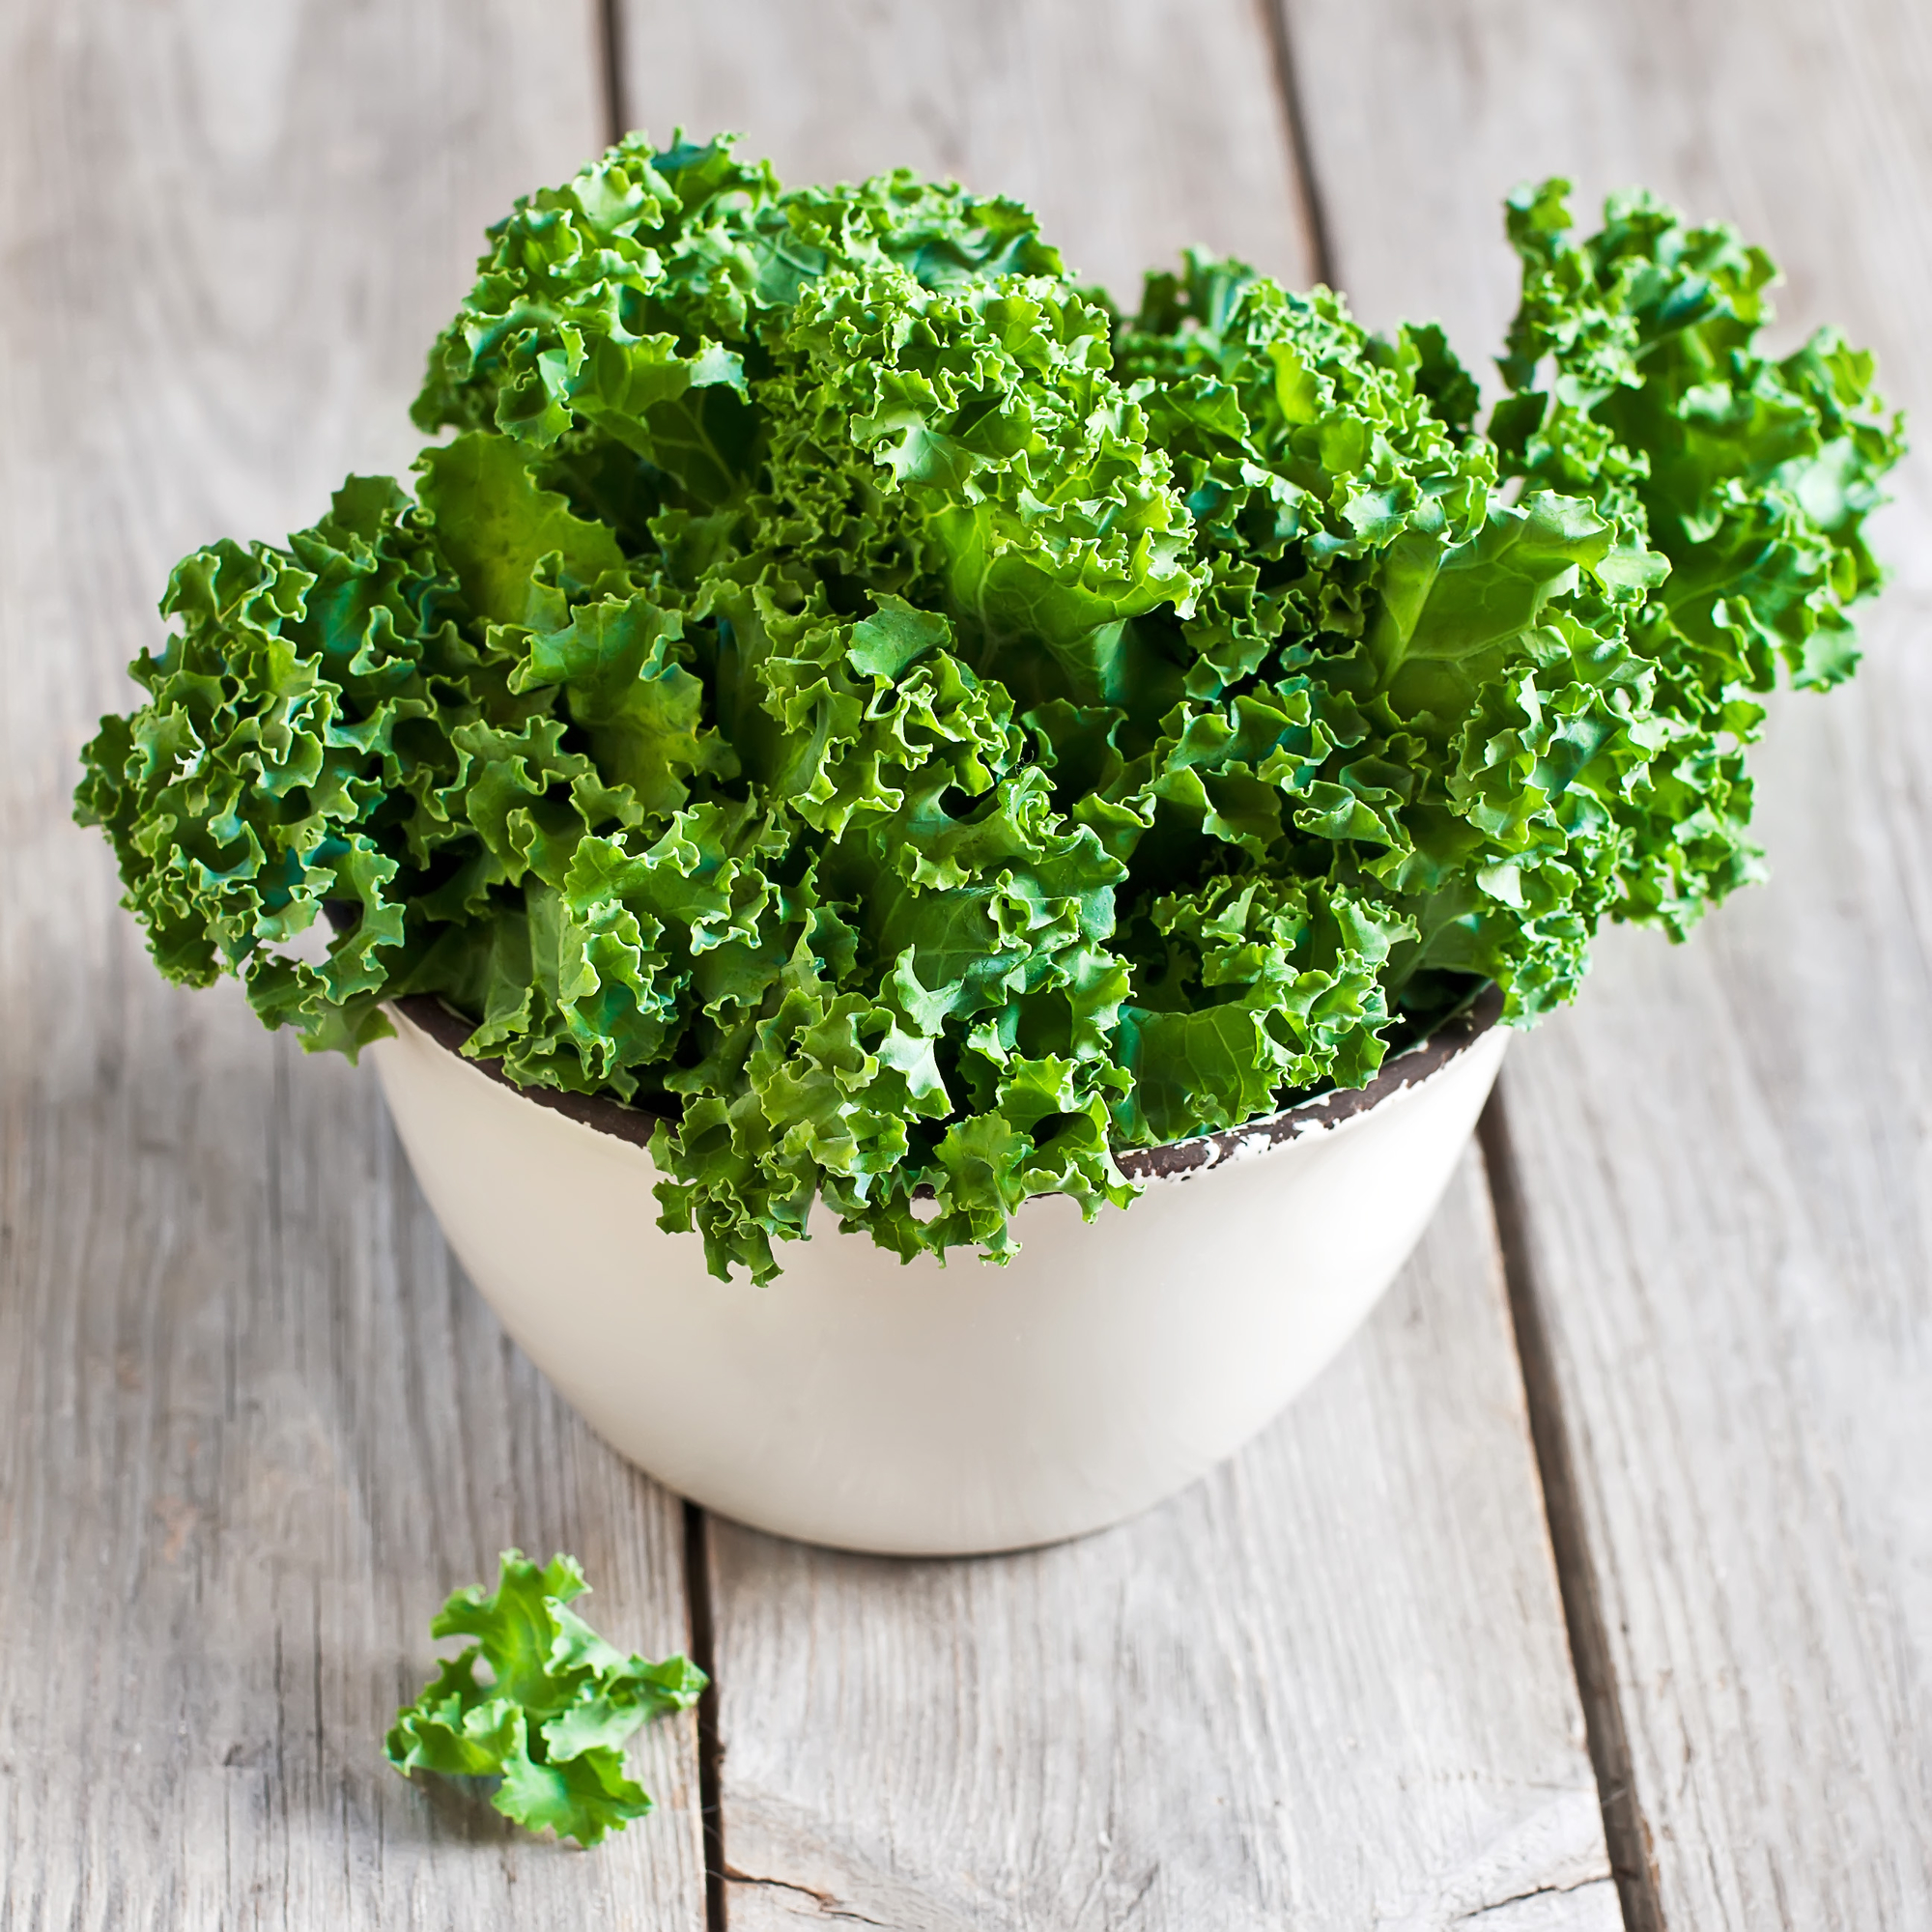 A white bowl full of fresh kale leaves on a table